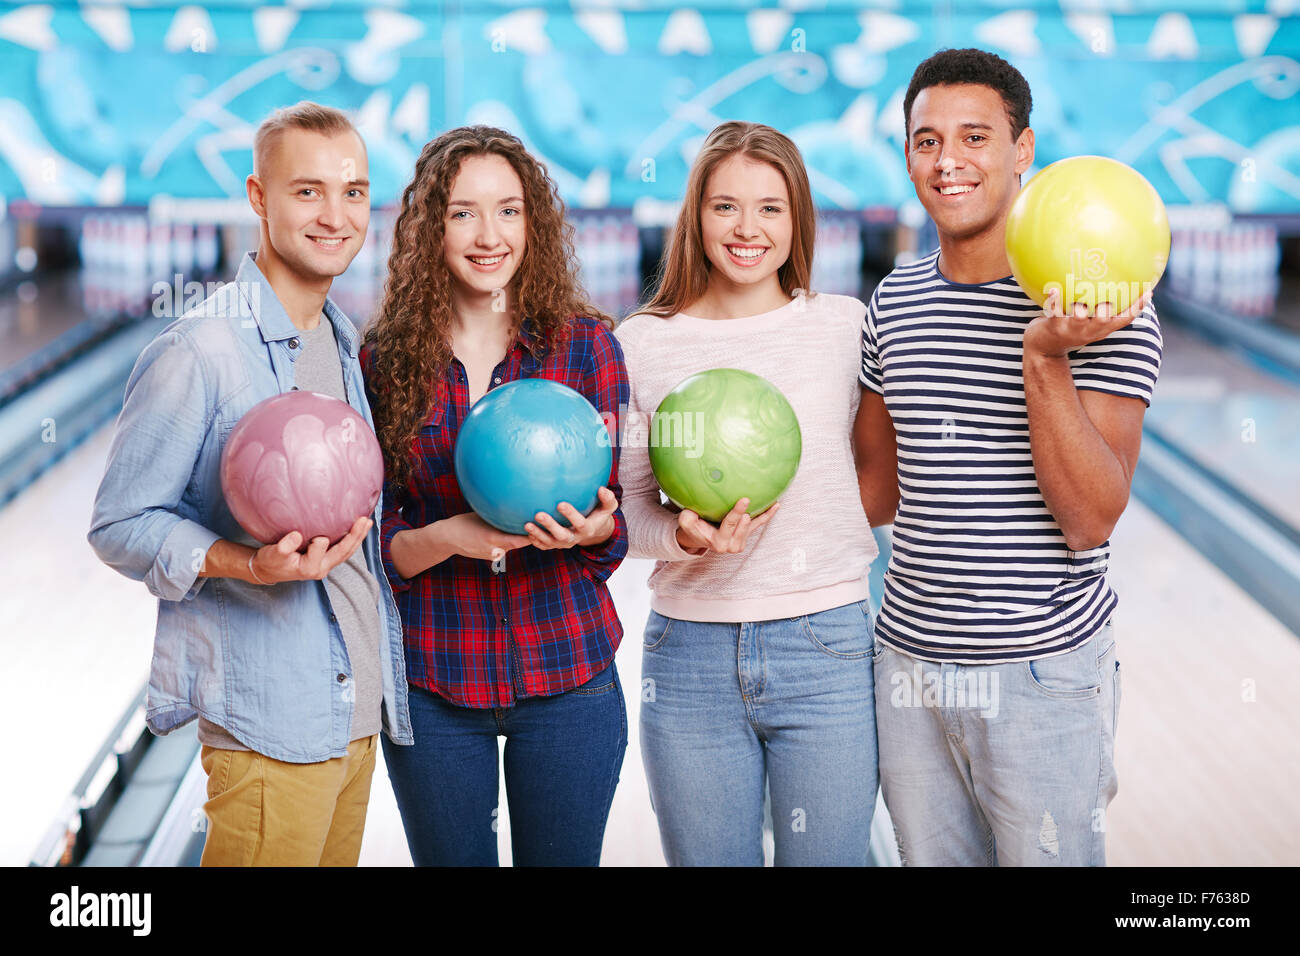 Group of four friends holding bowling balls and smiling - Stock Image